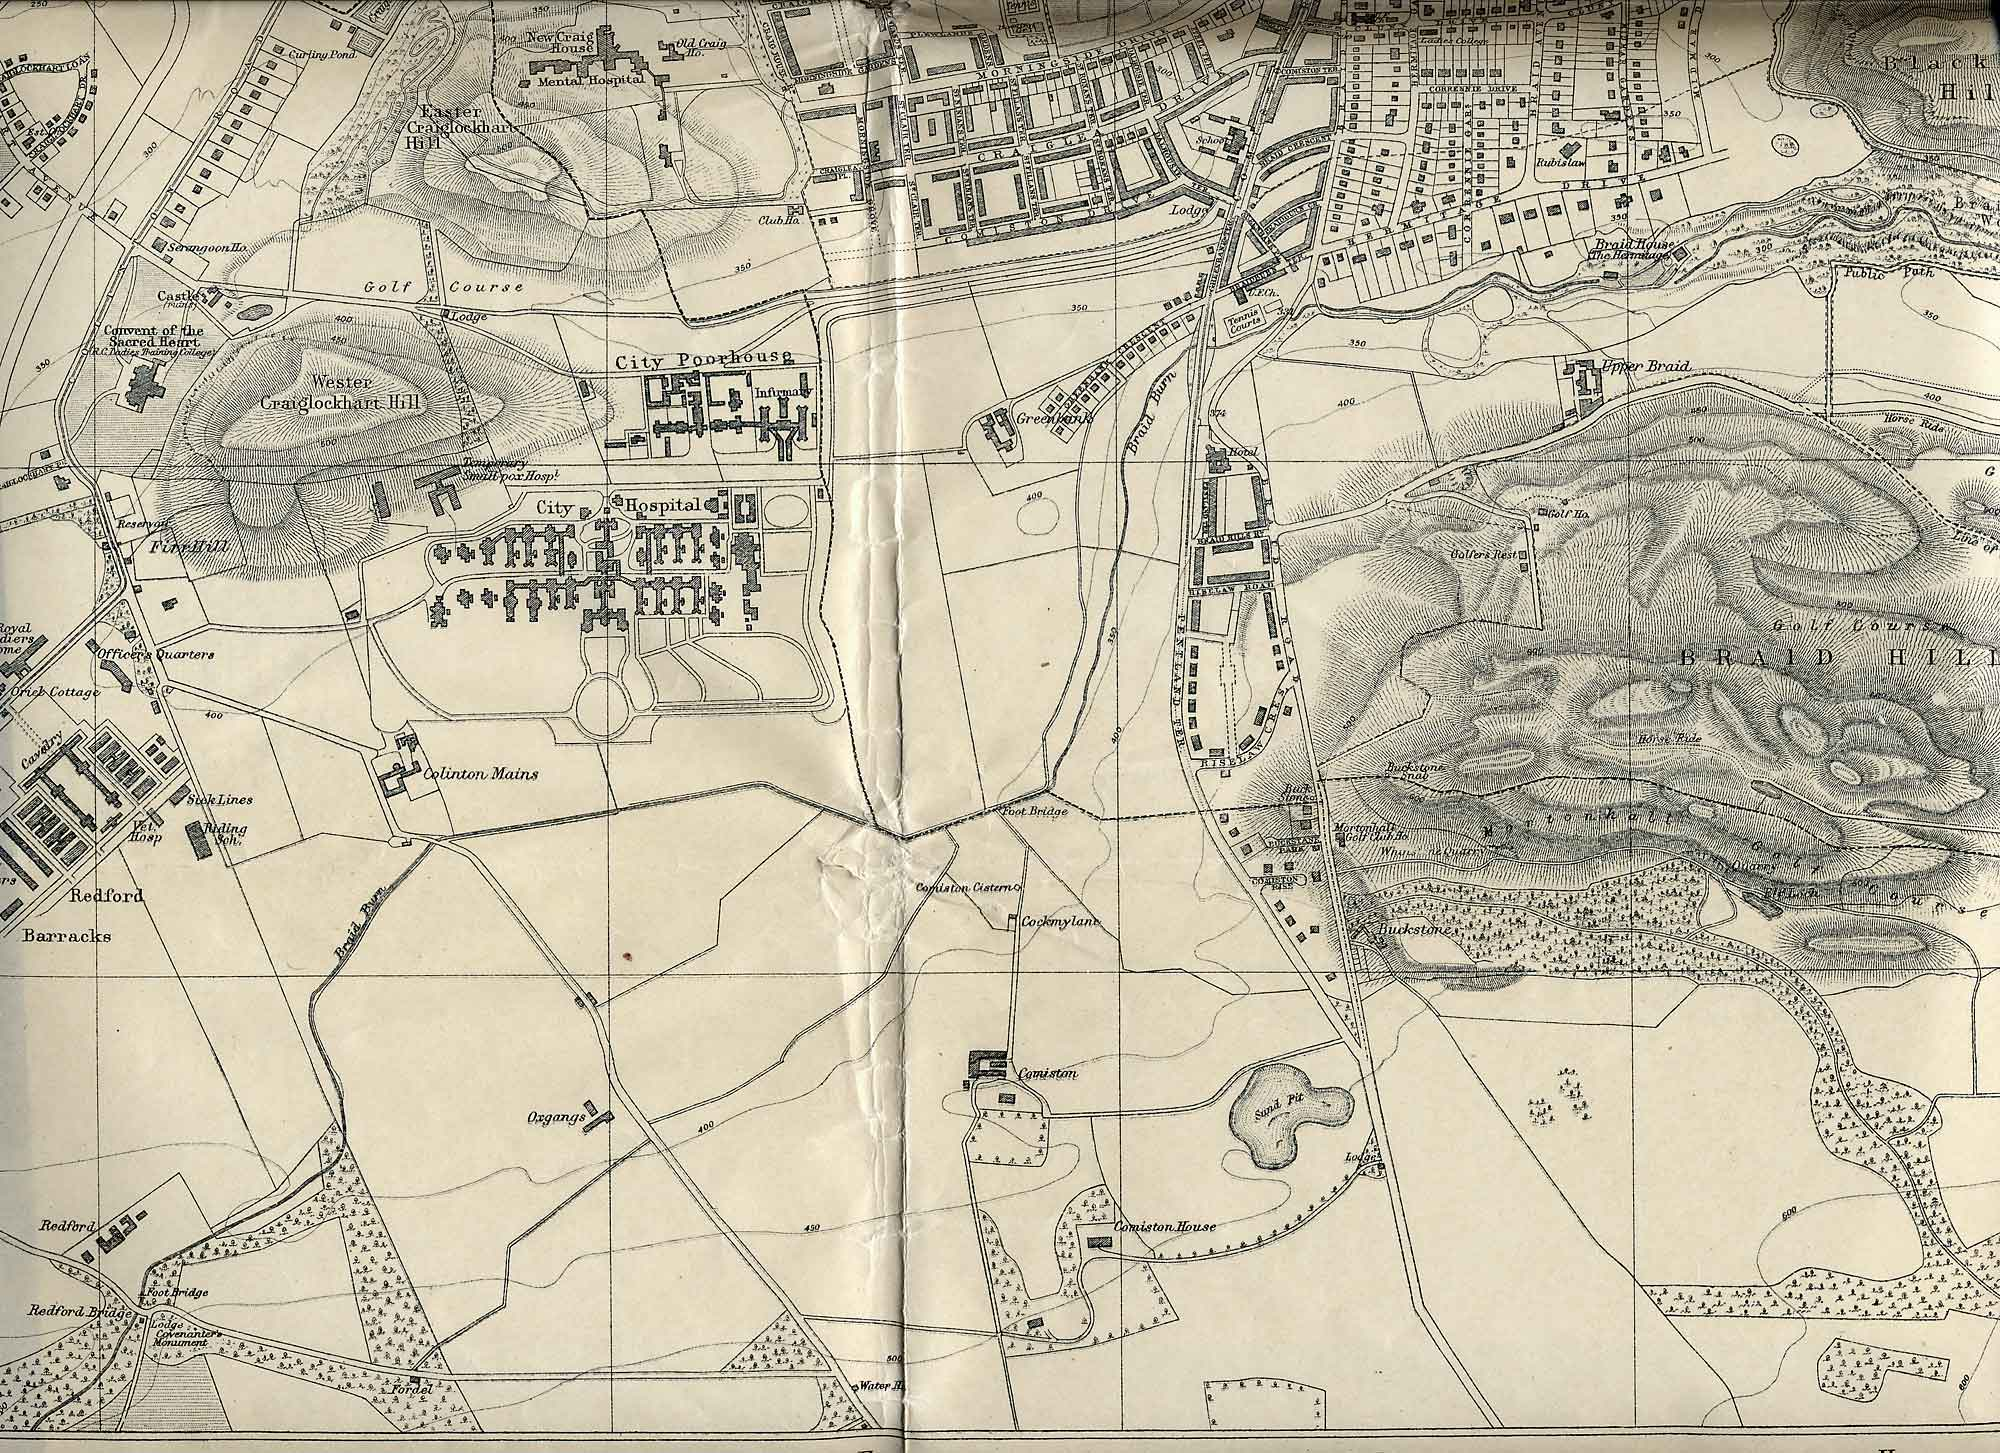 Edinburgh and Leith map, 1925  -  Craiglockhart and Braid Hills section  -  Enlarged